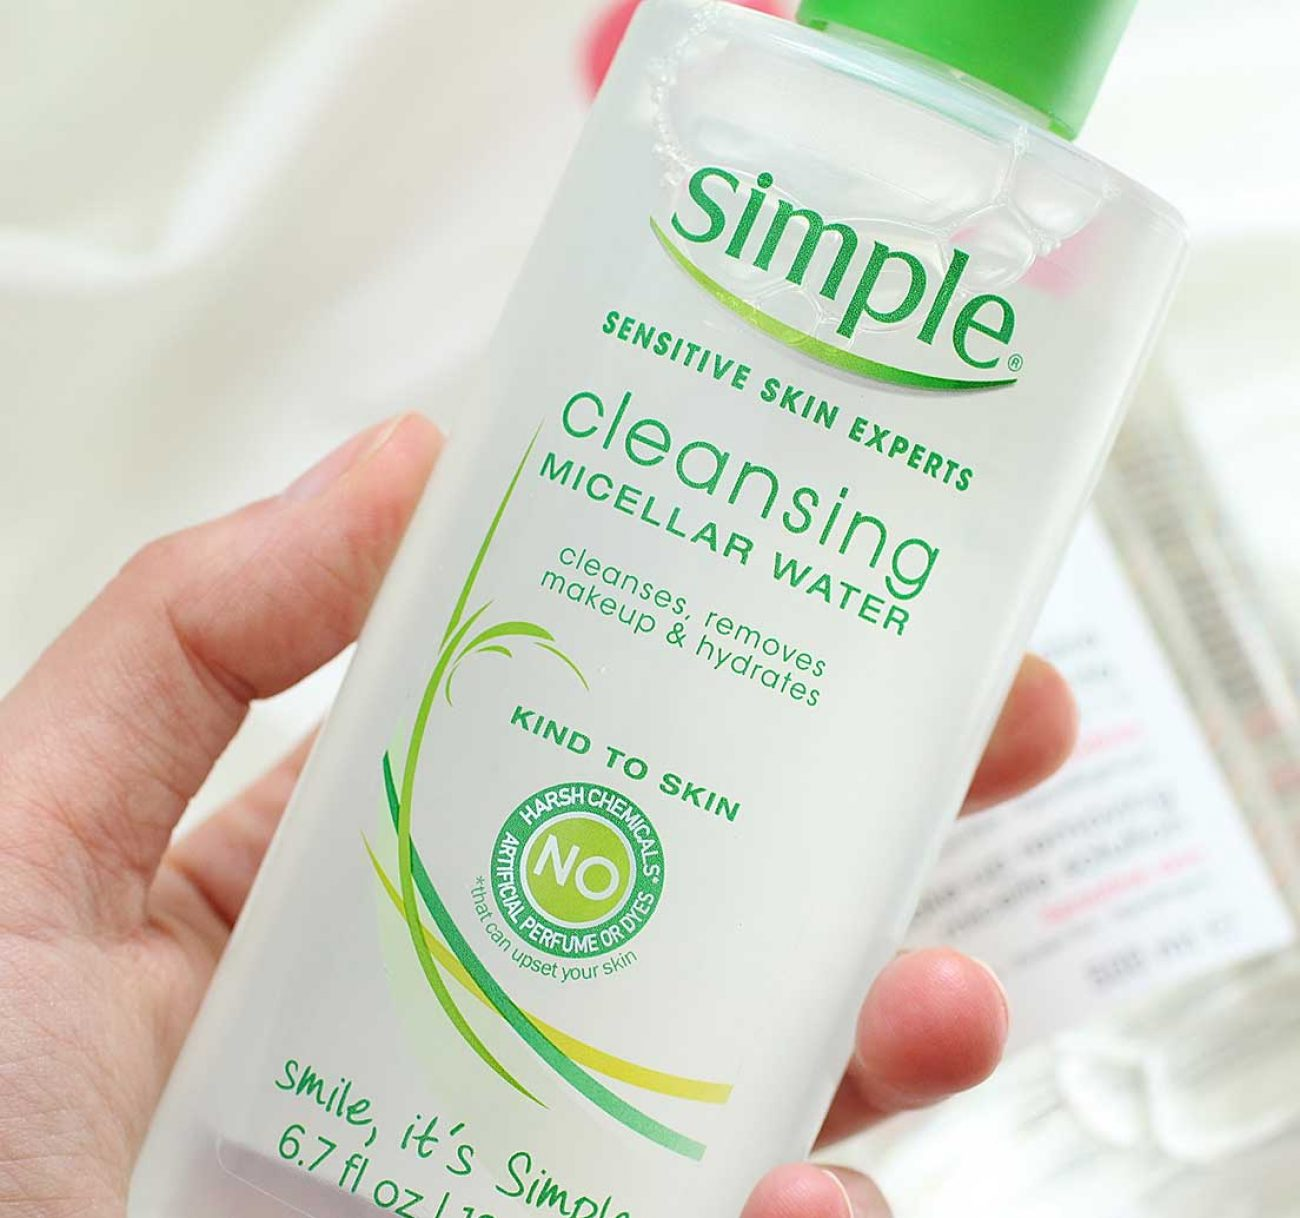 Why I Use Simple Cleansing Micellar Water Daily